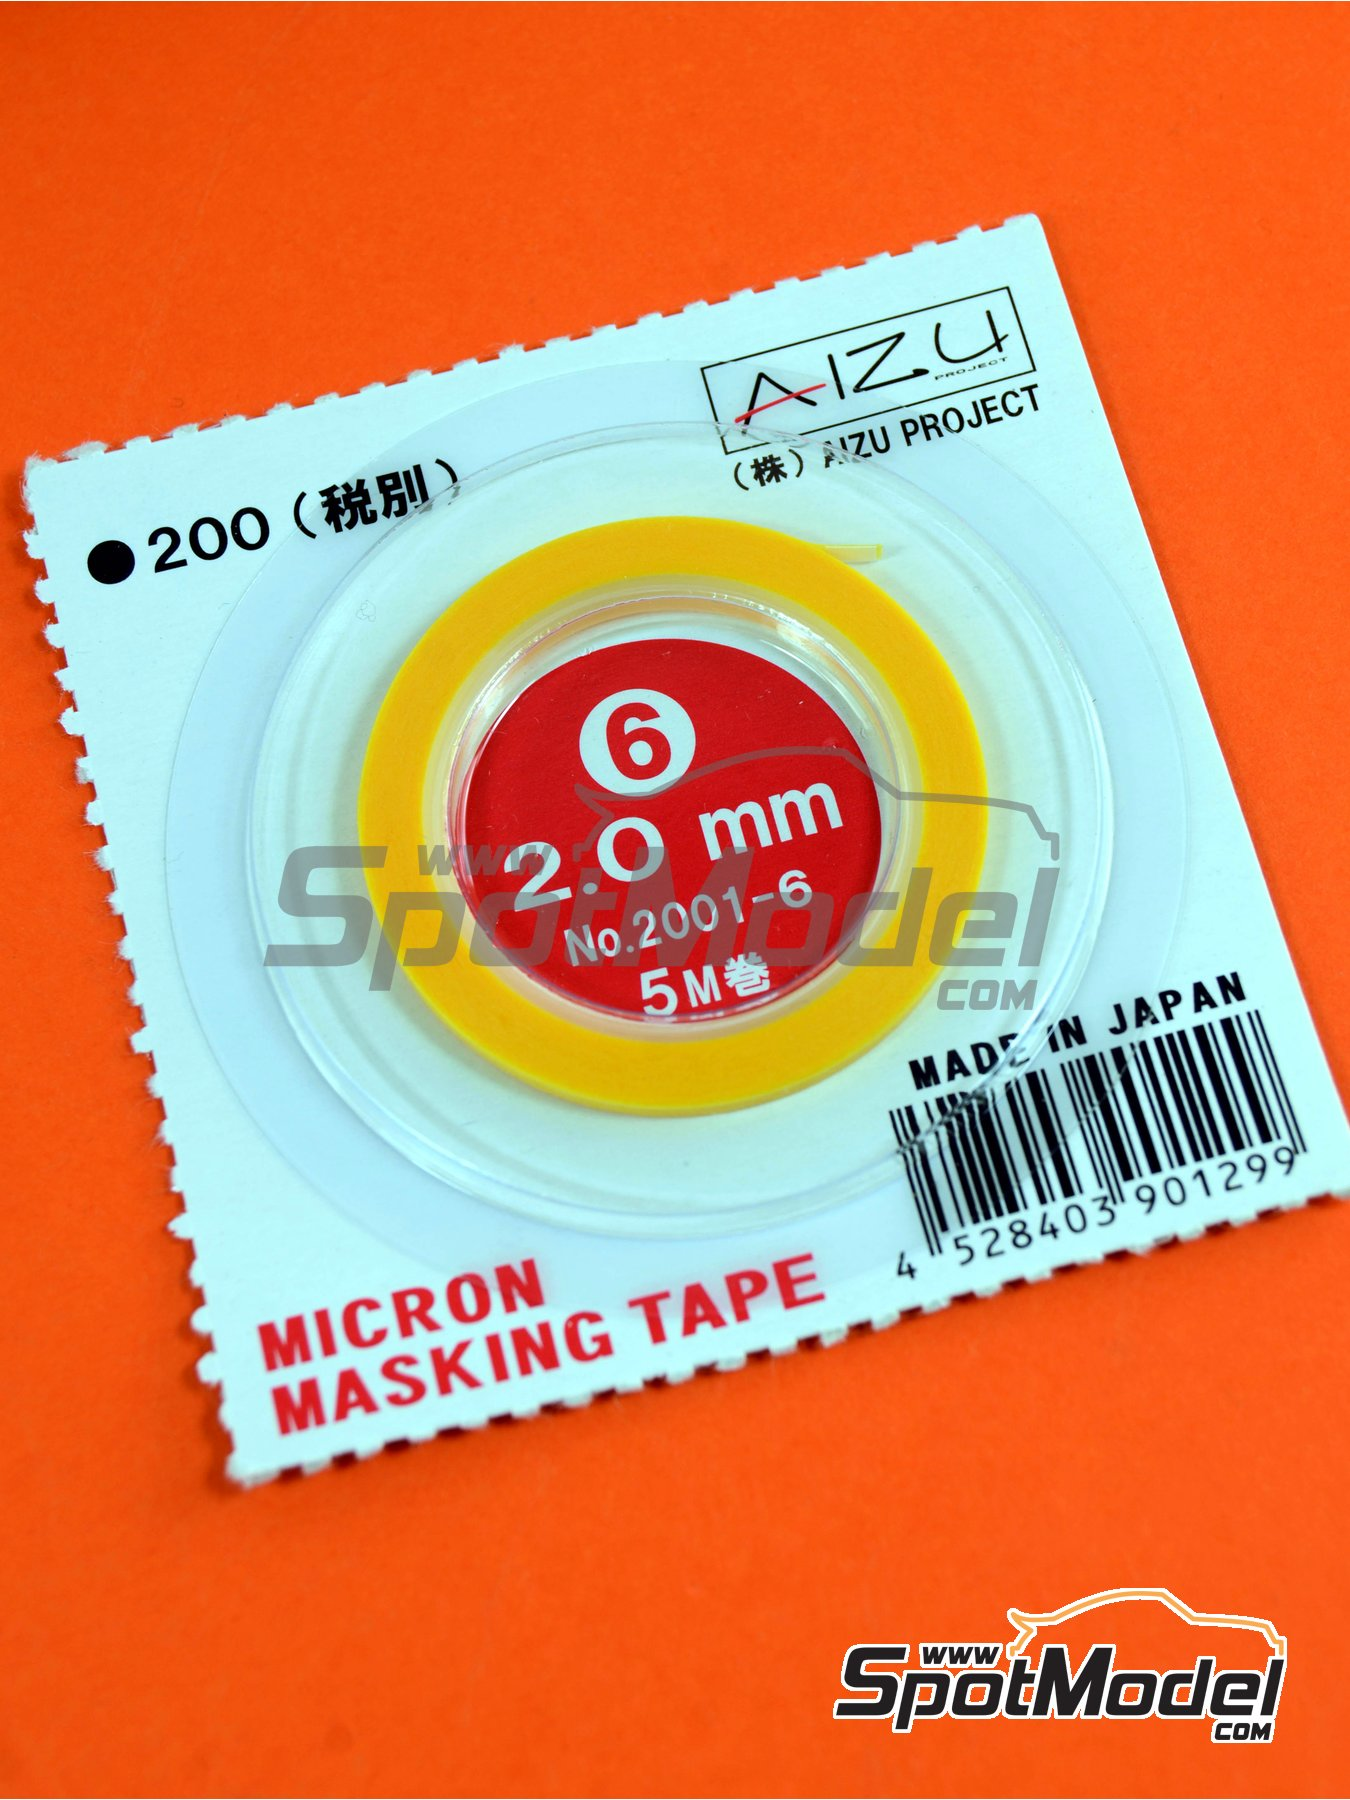 Micron masking tape 2,0mm x 5m | Masks manufactured by Aizu Project (ref. AIZU-2001-6) image